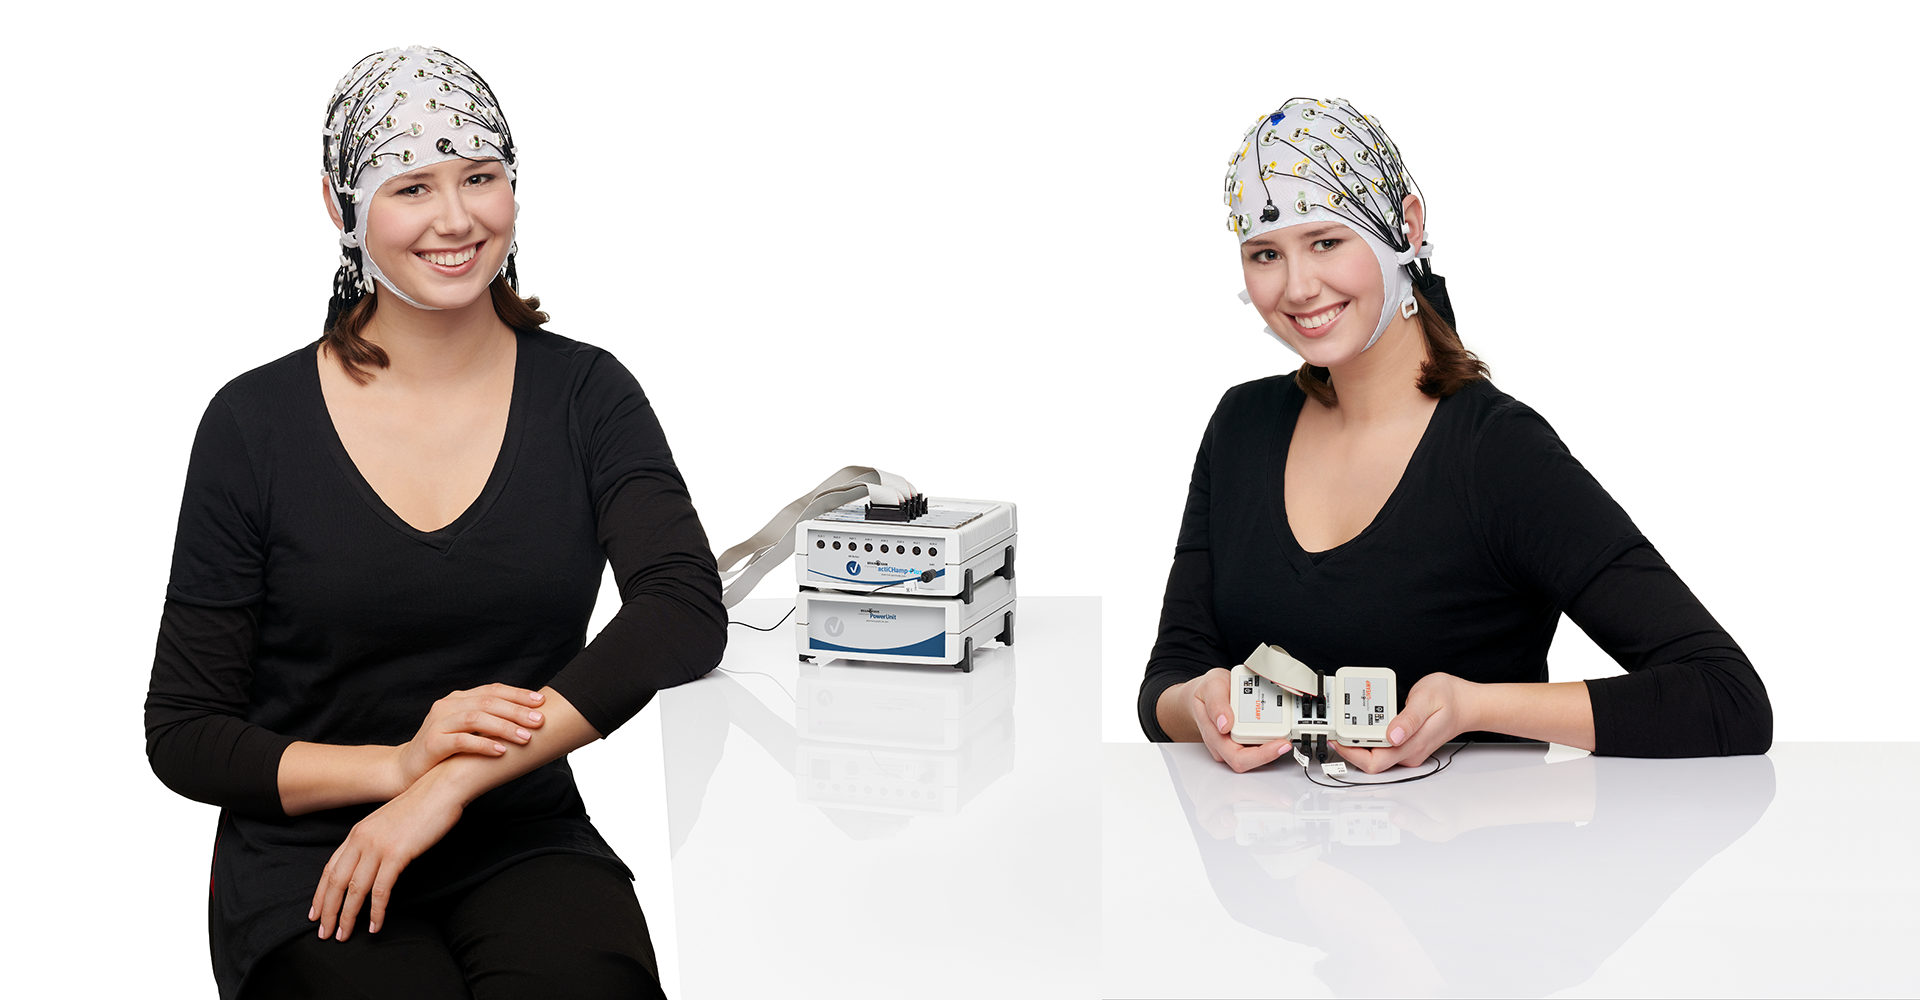 Stationary and mobile EEG solutions